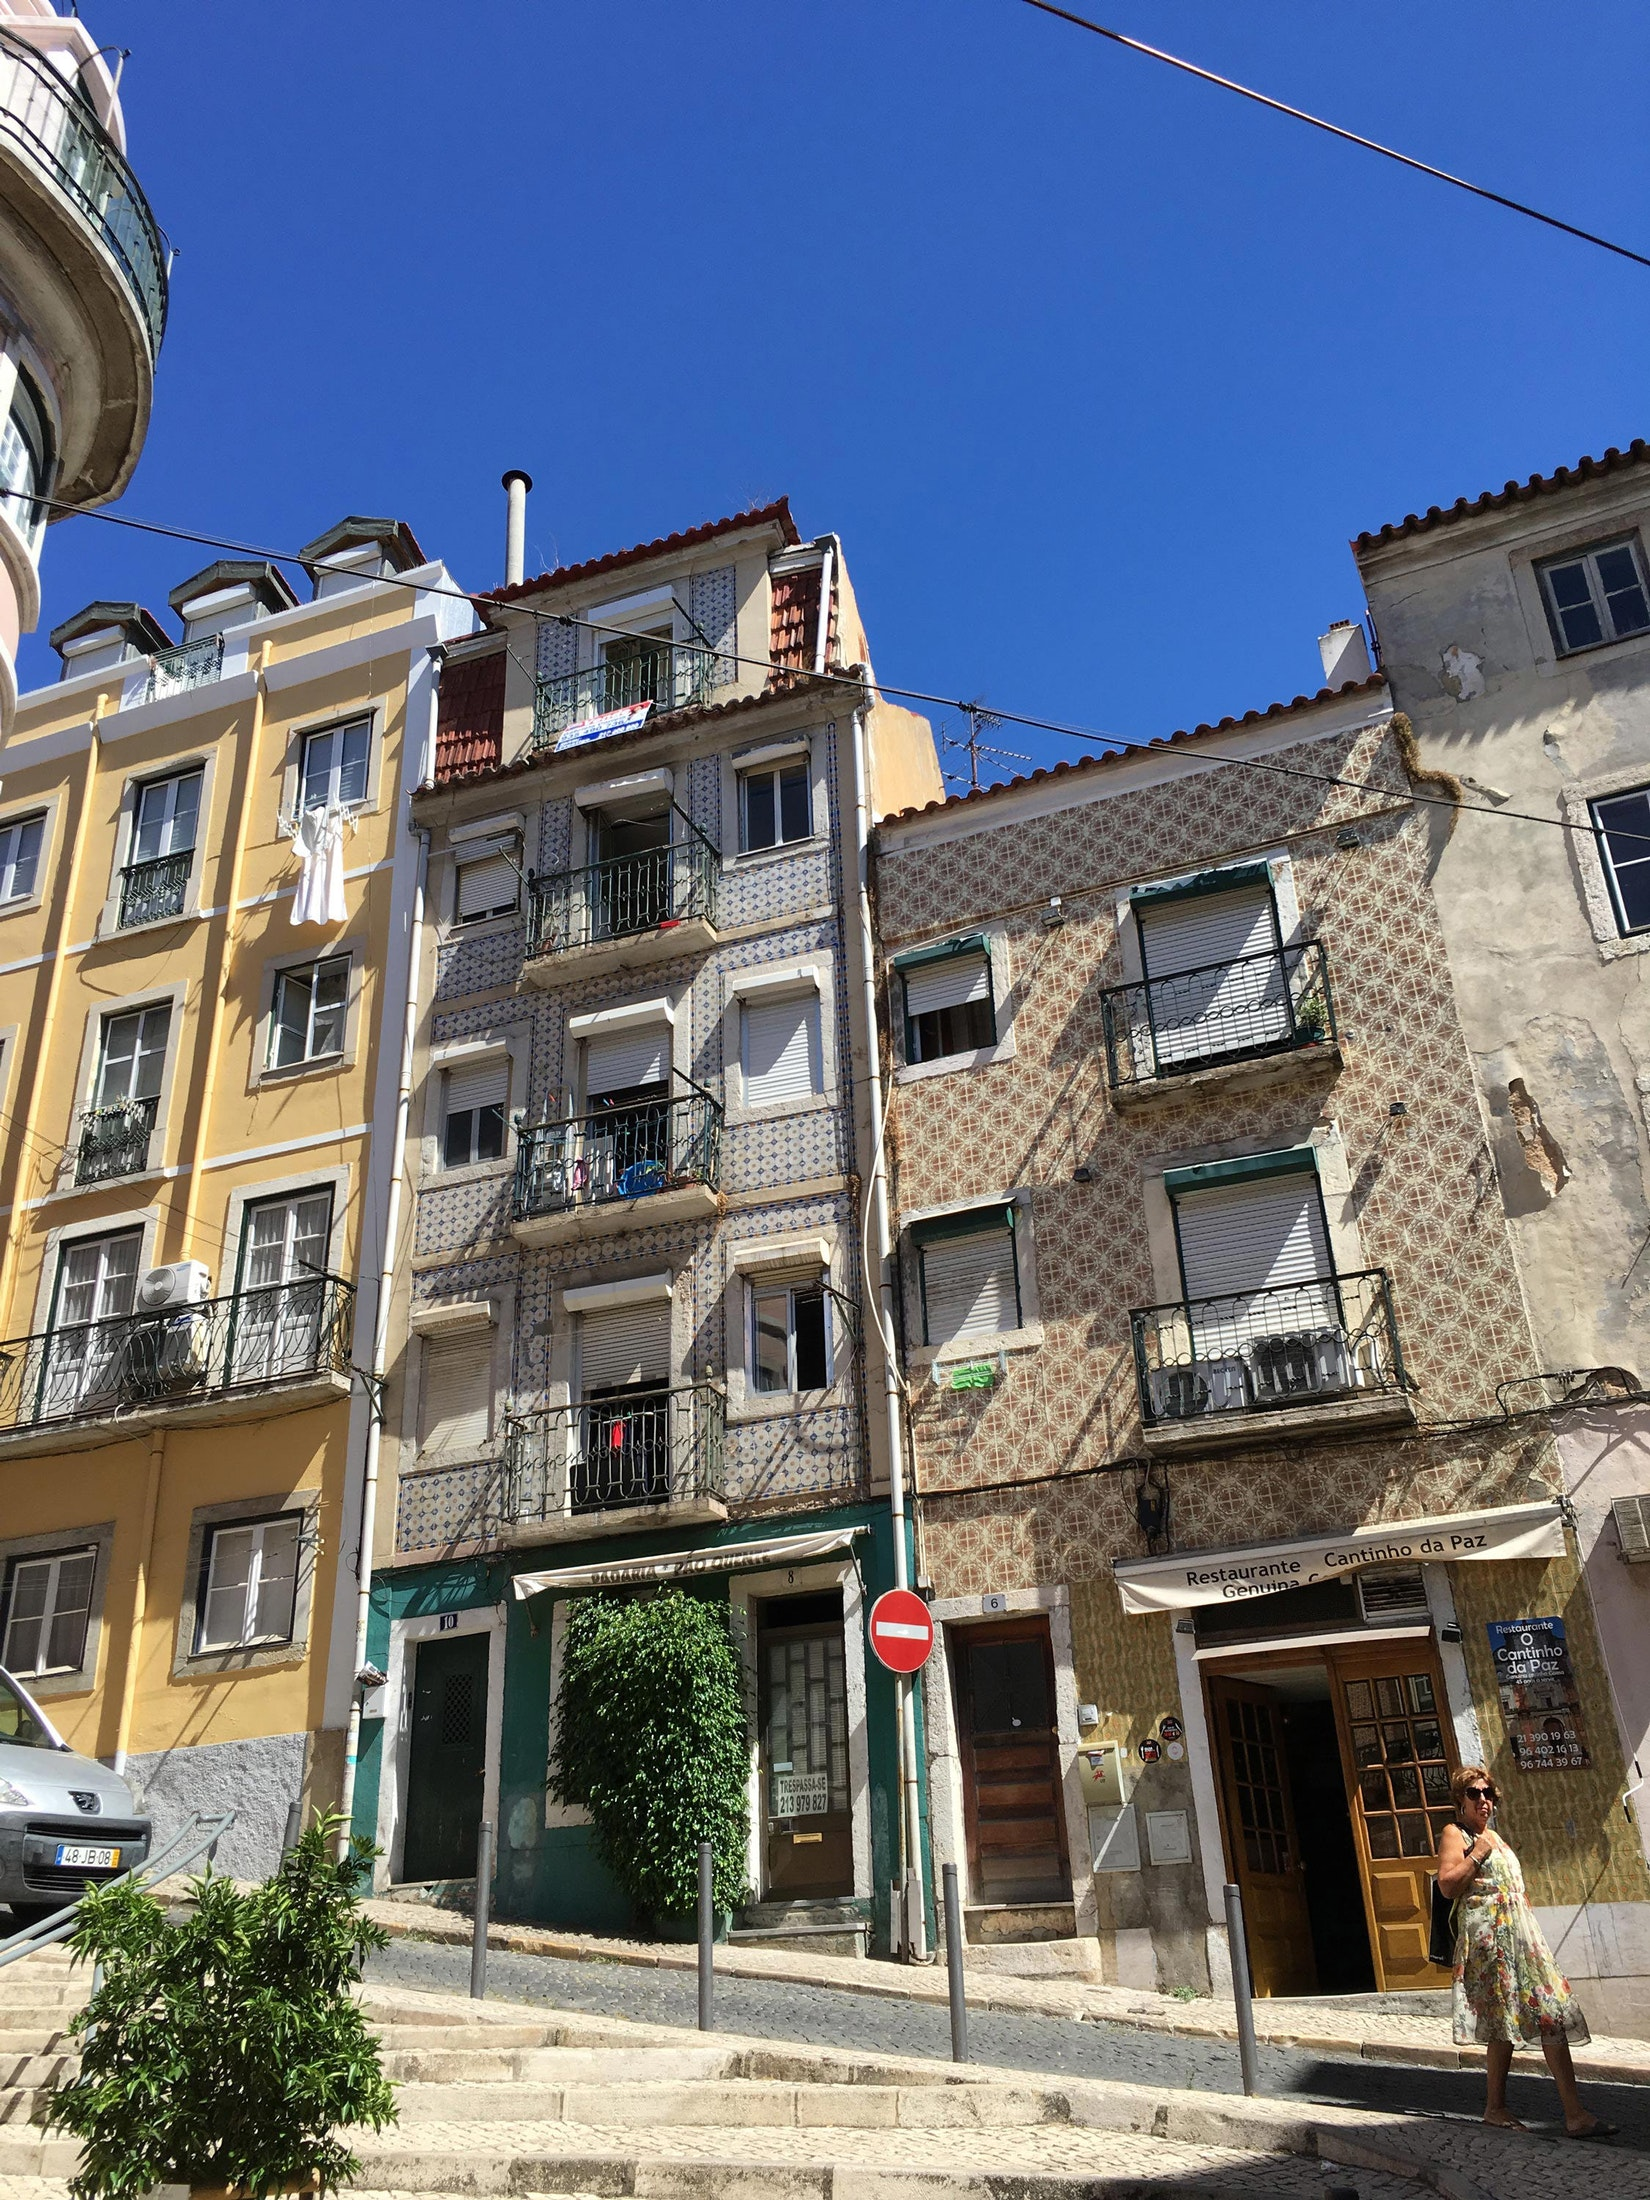 Hilly Lisbon streets